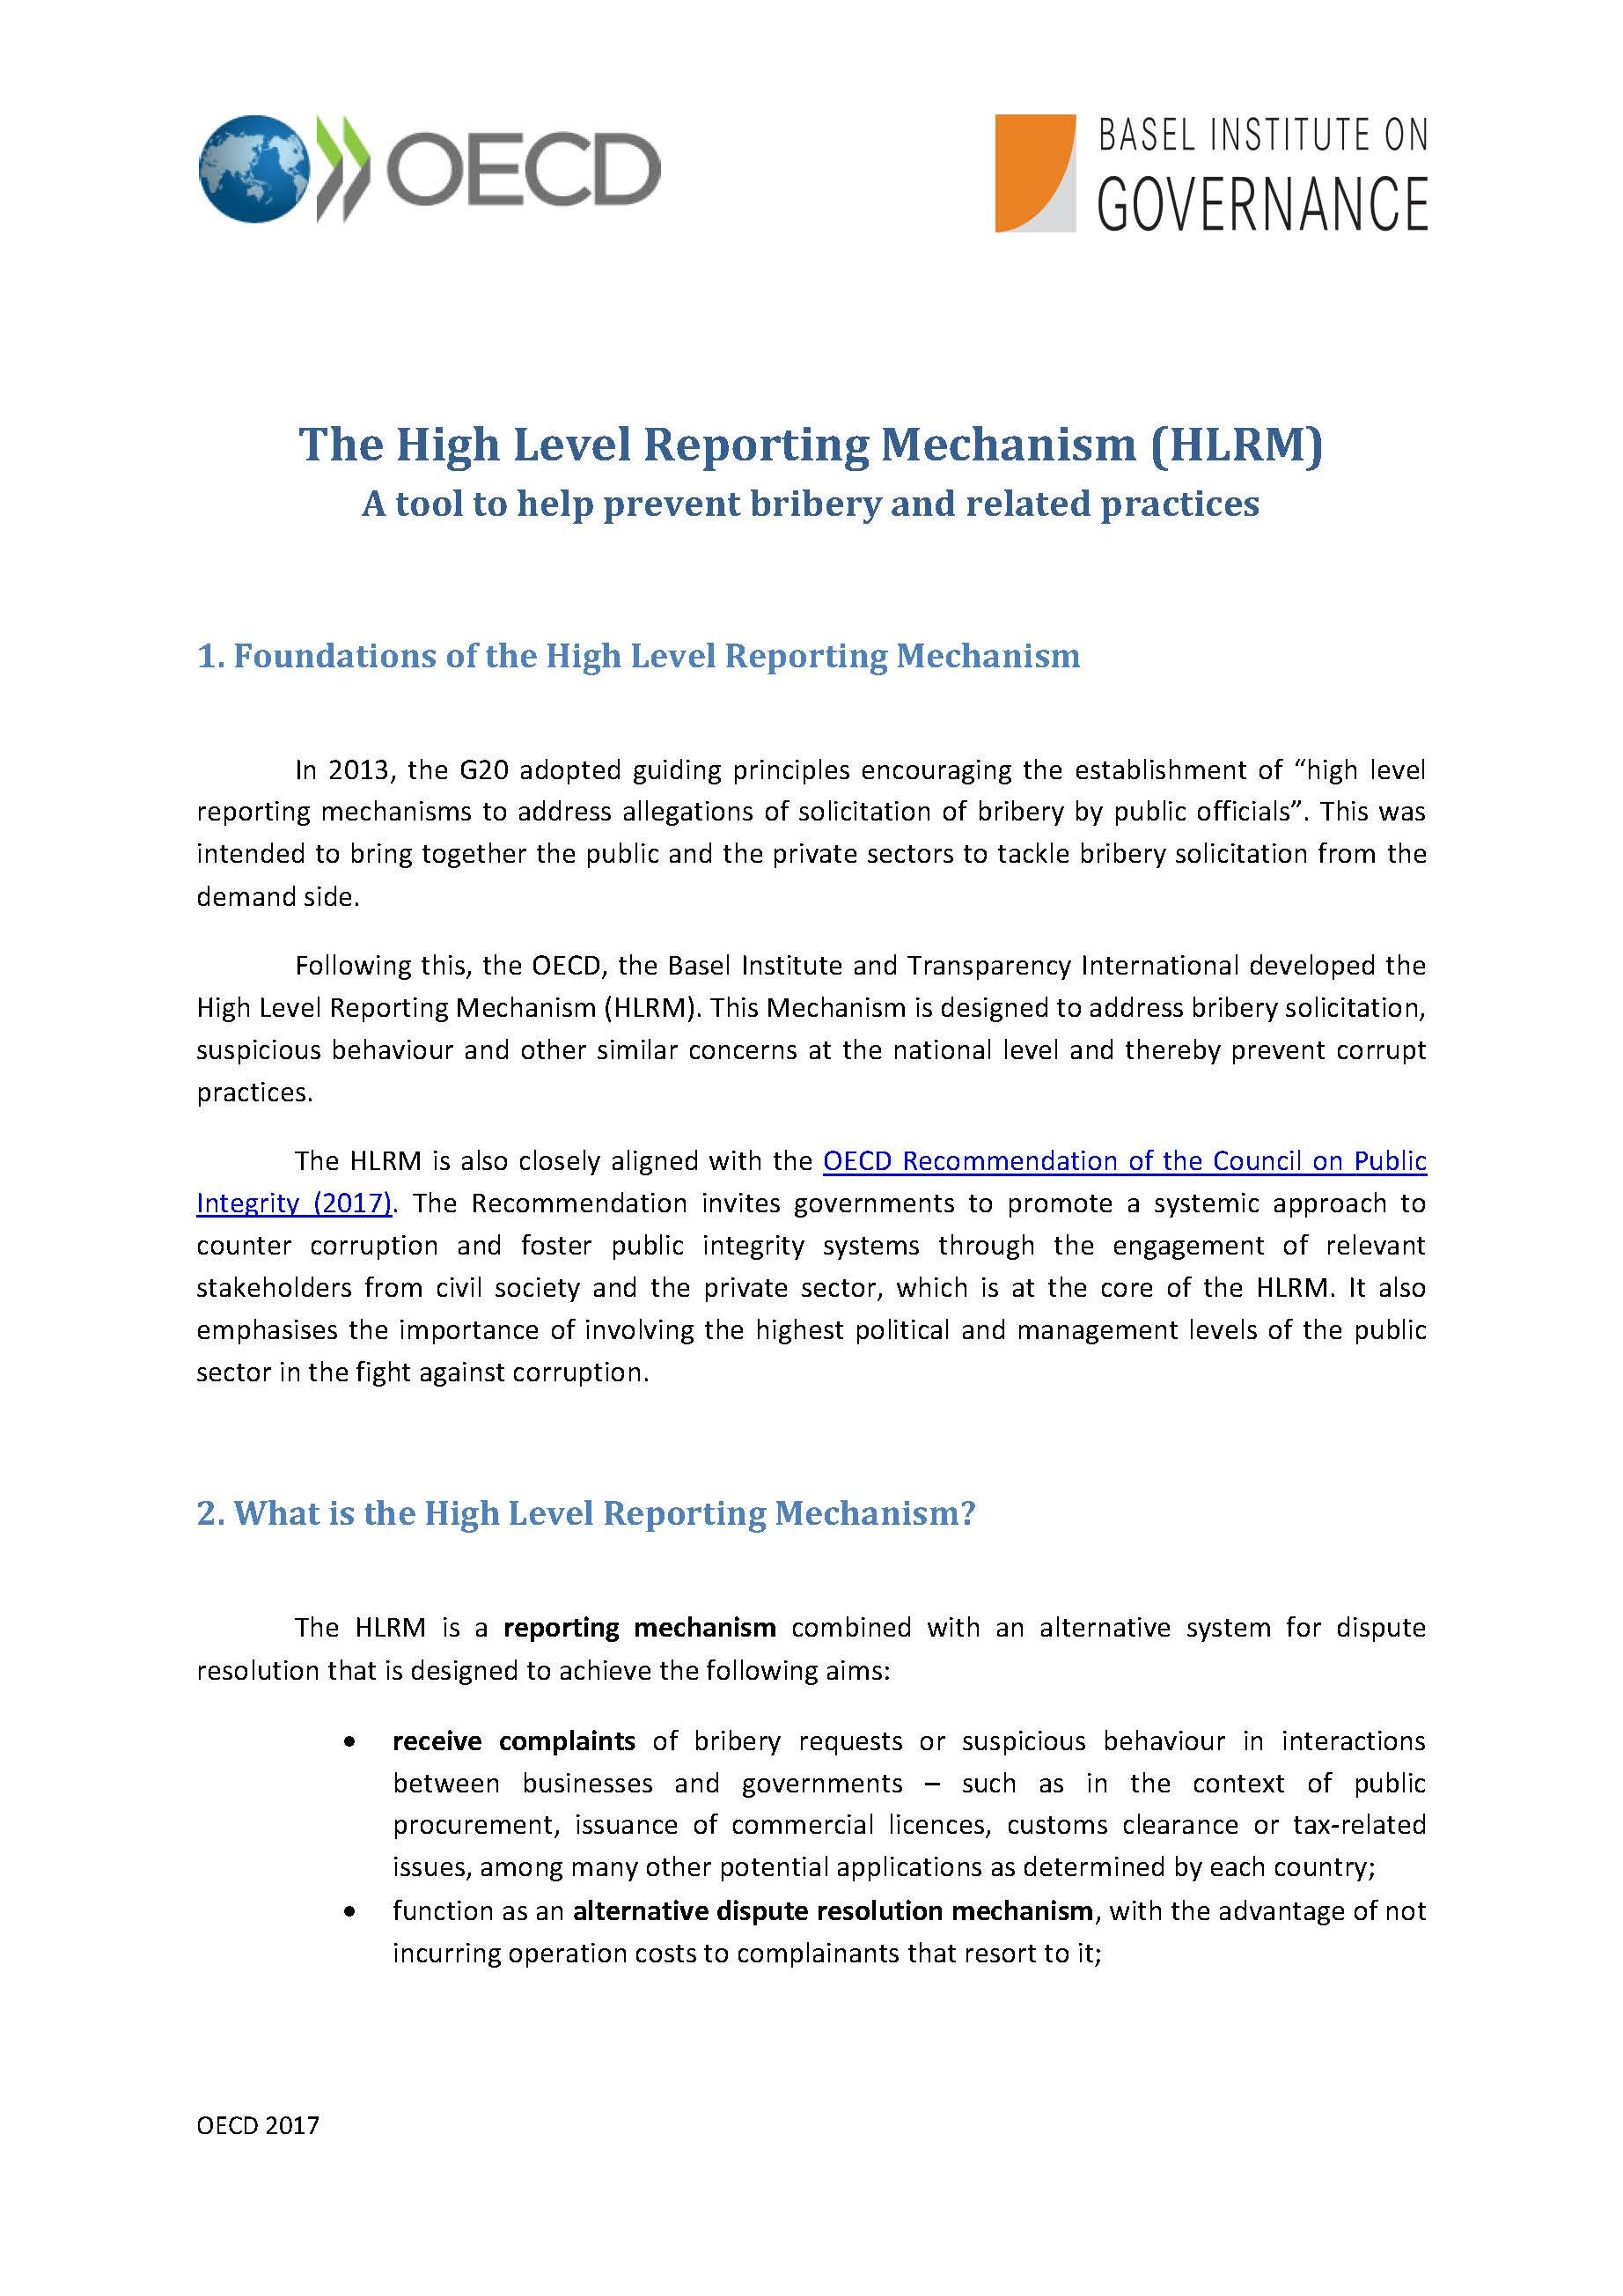 High Level Reporting Mechanism 2017 overview - page 1